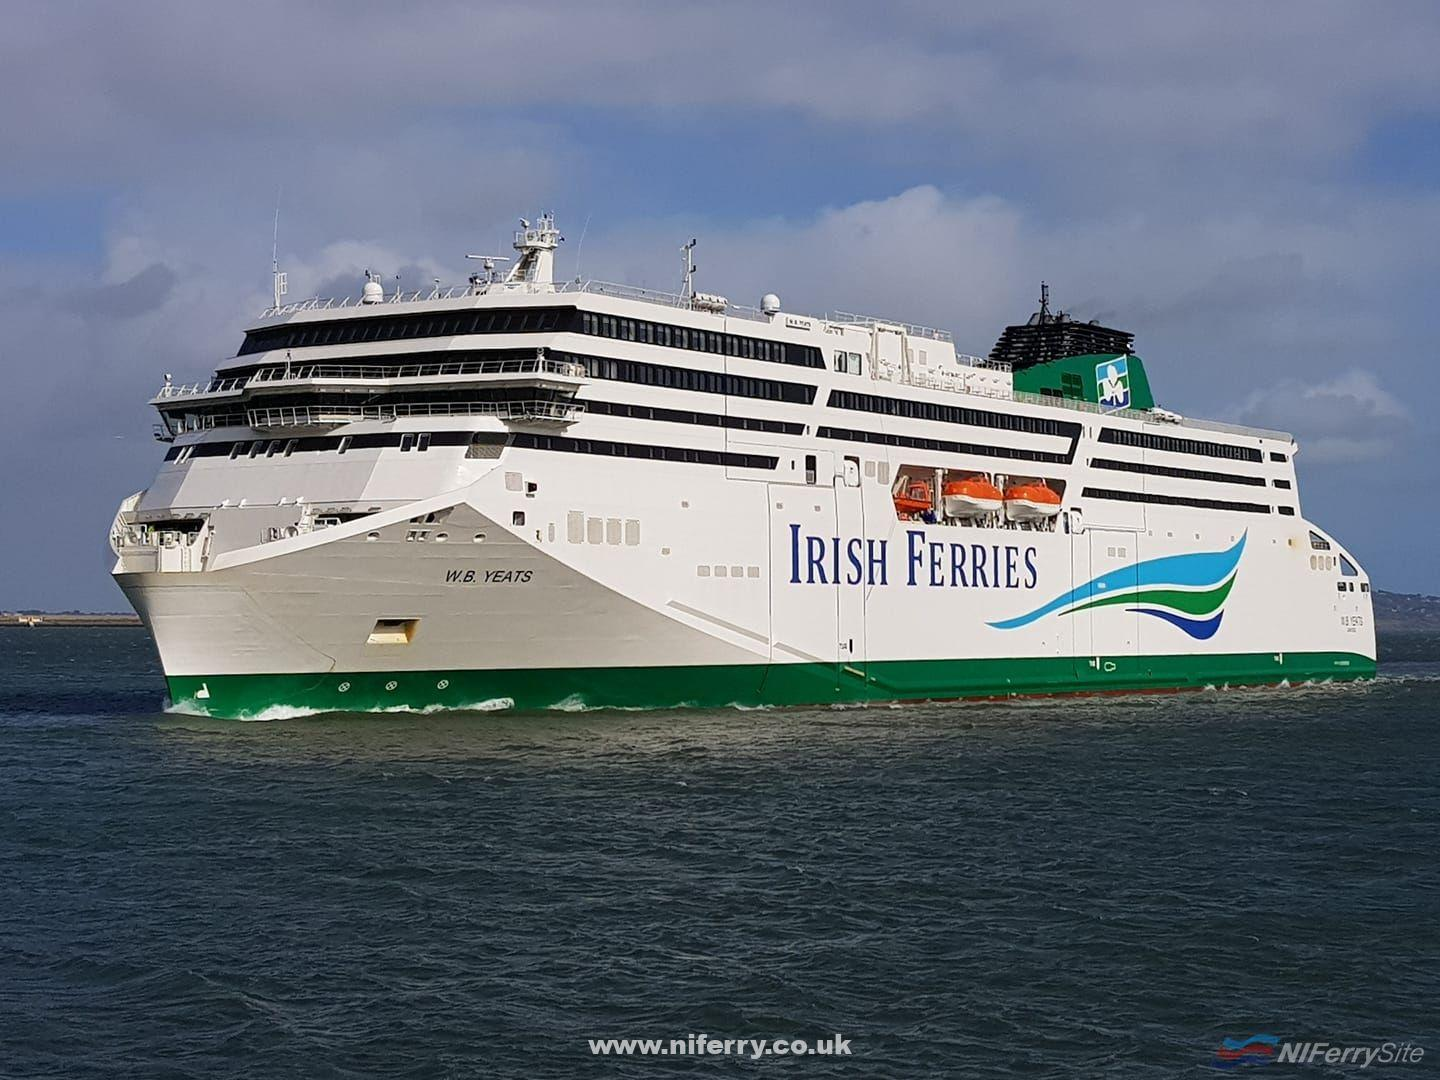 Irish Ferries W. B. YEATS arrives in Dublin at around 13:30 on 14 March 2019. This was her final sailing from Holyhead before switching to the Dublin to Cherbourg route for the Spring/Summer season and had been delayed about 2 hours due to adverse weather (Storm Gareth). Copyright © Robbie Cox.